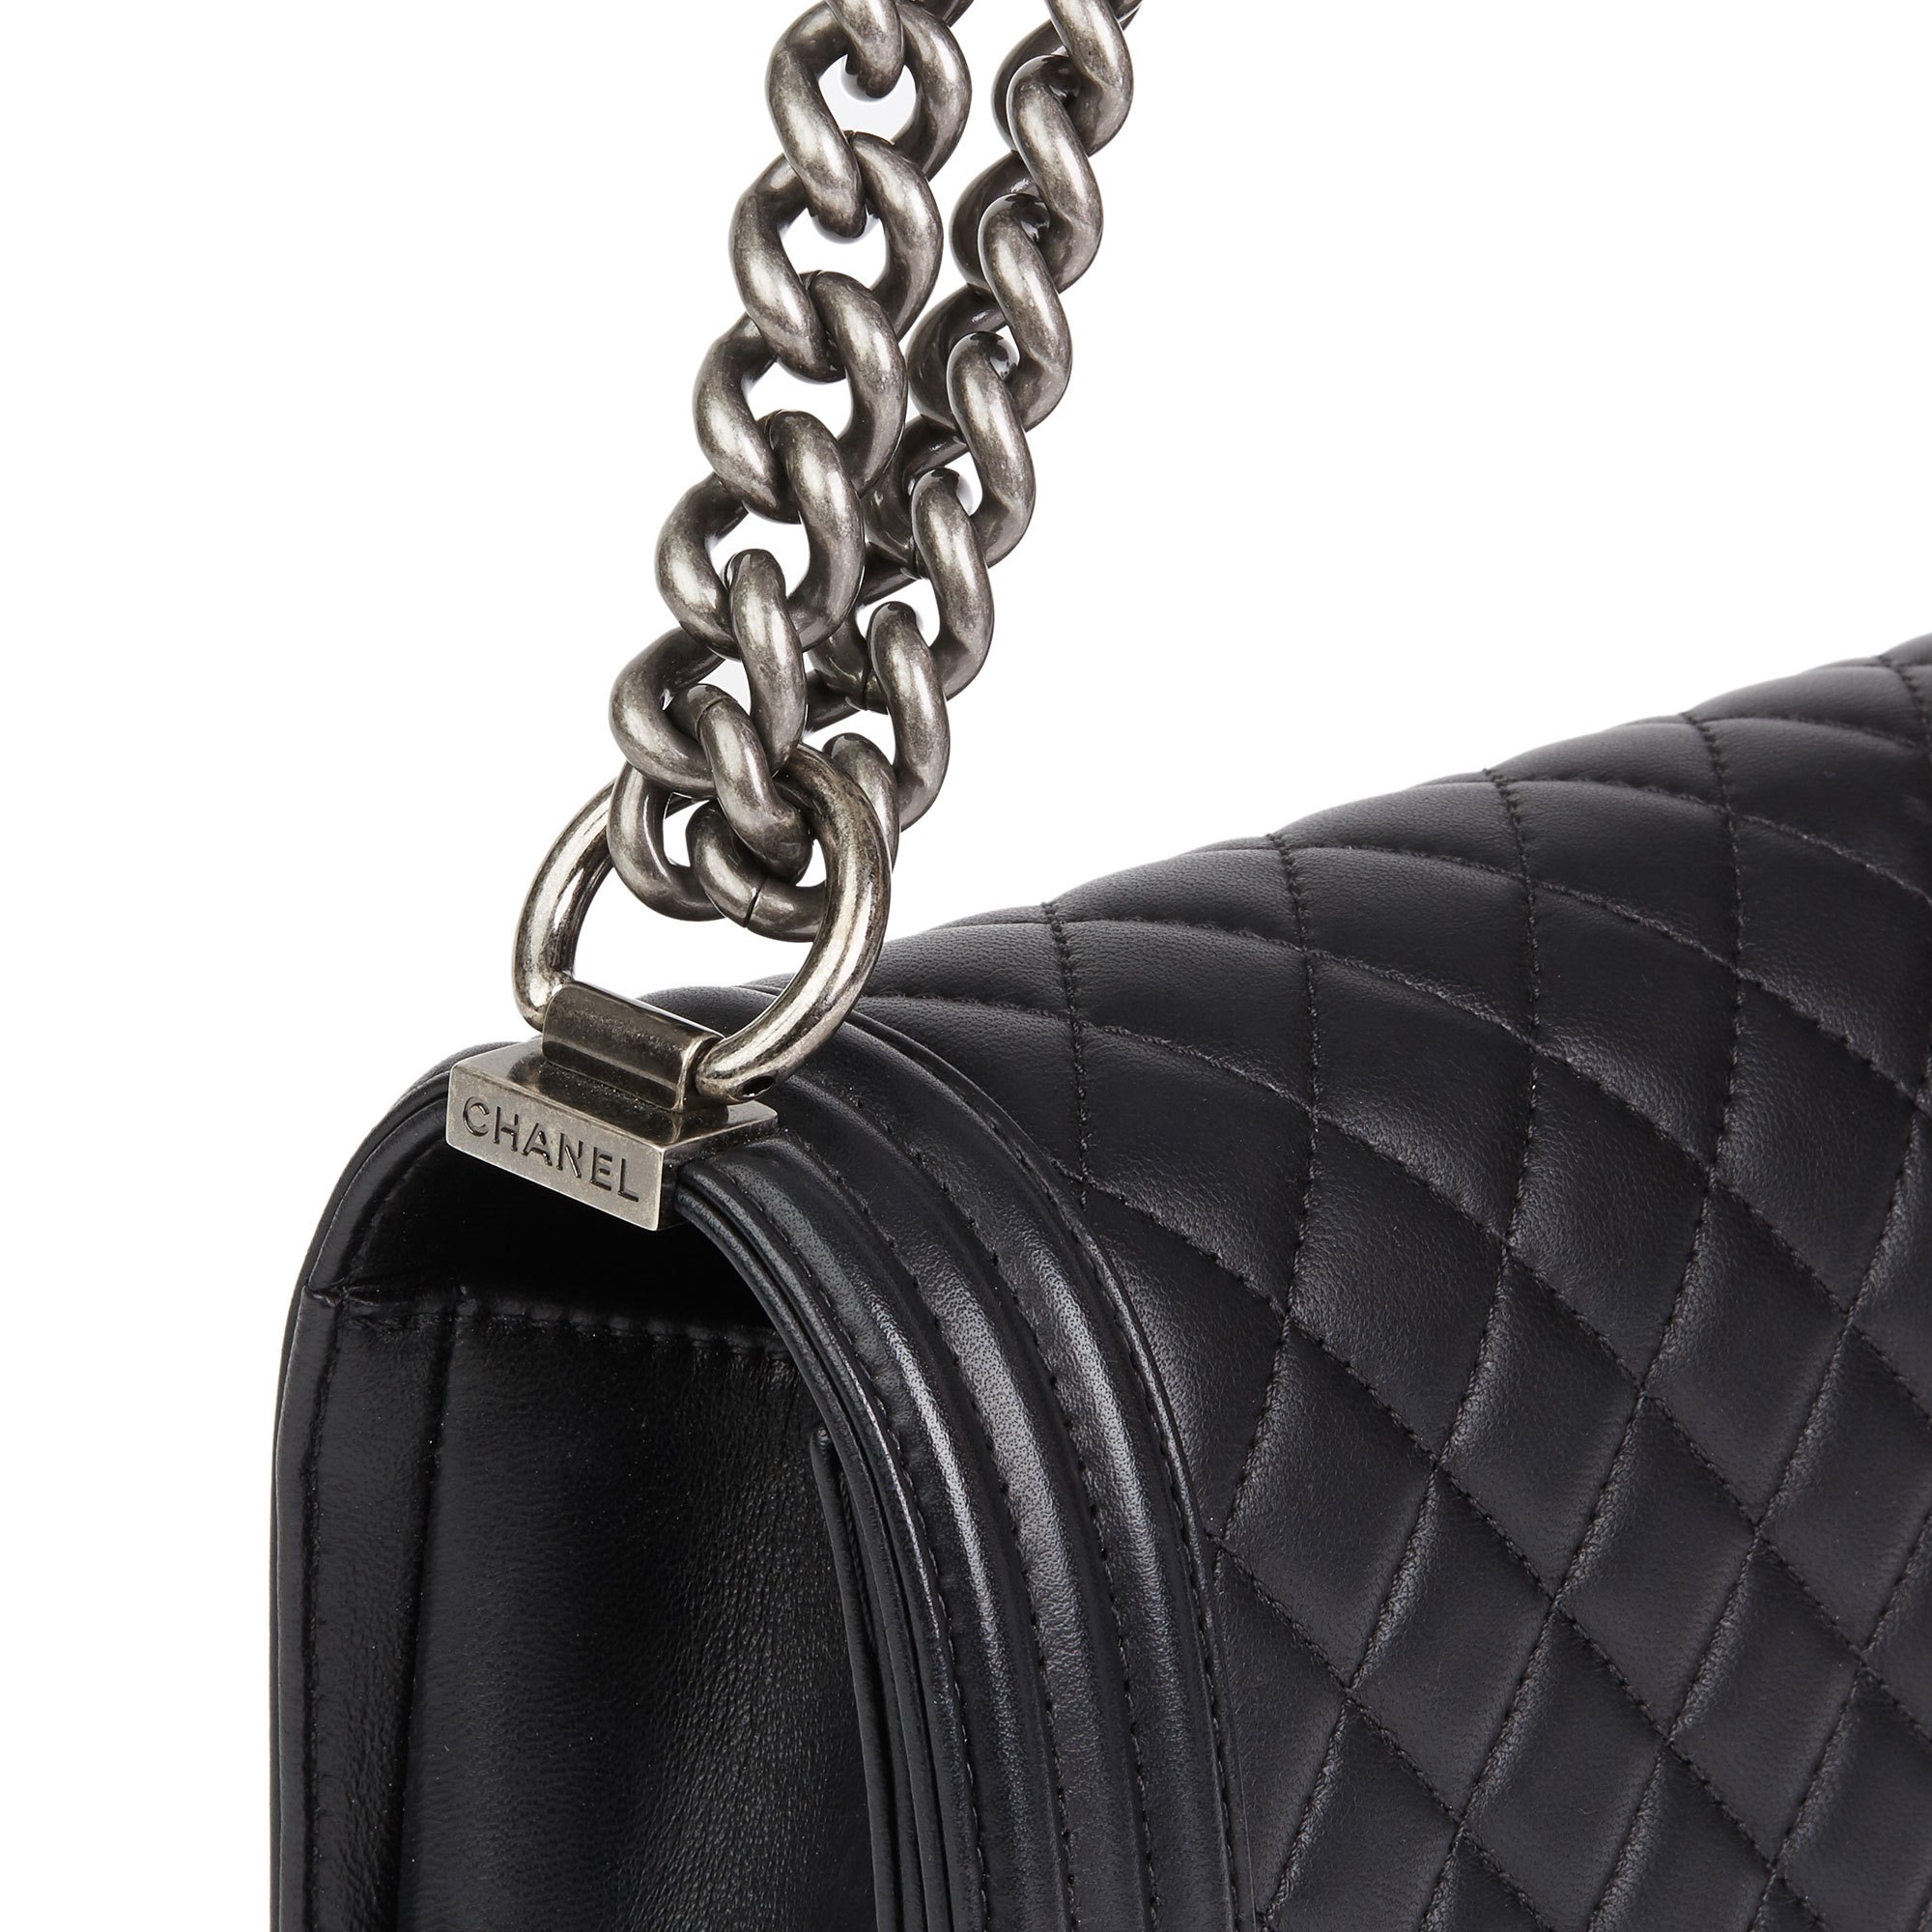 Chanel Black Quilted Lambskin Leather Medium Le Boy